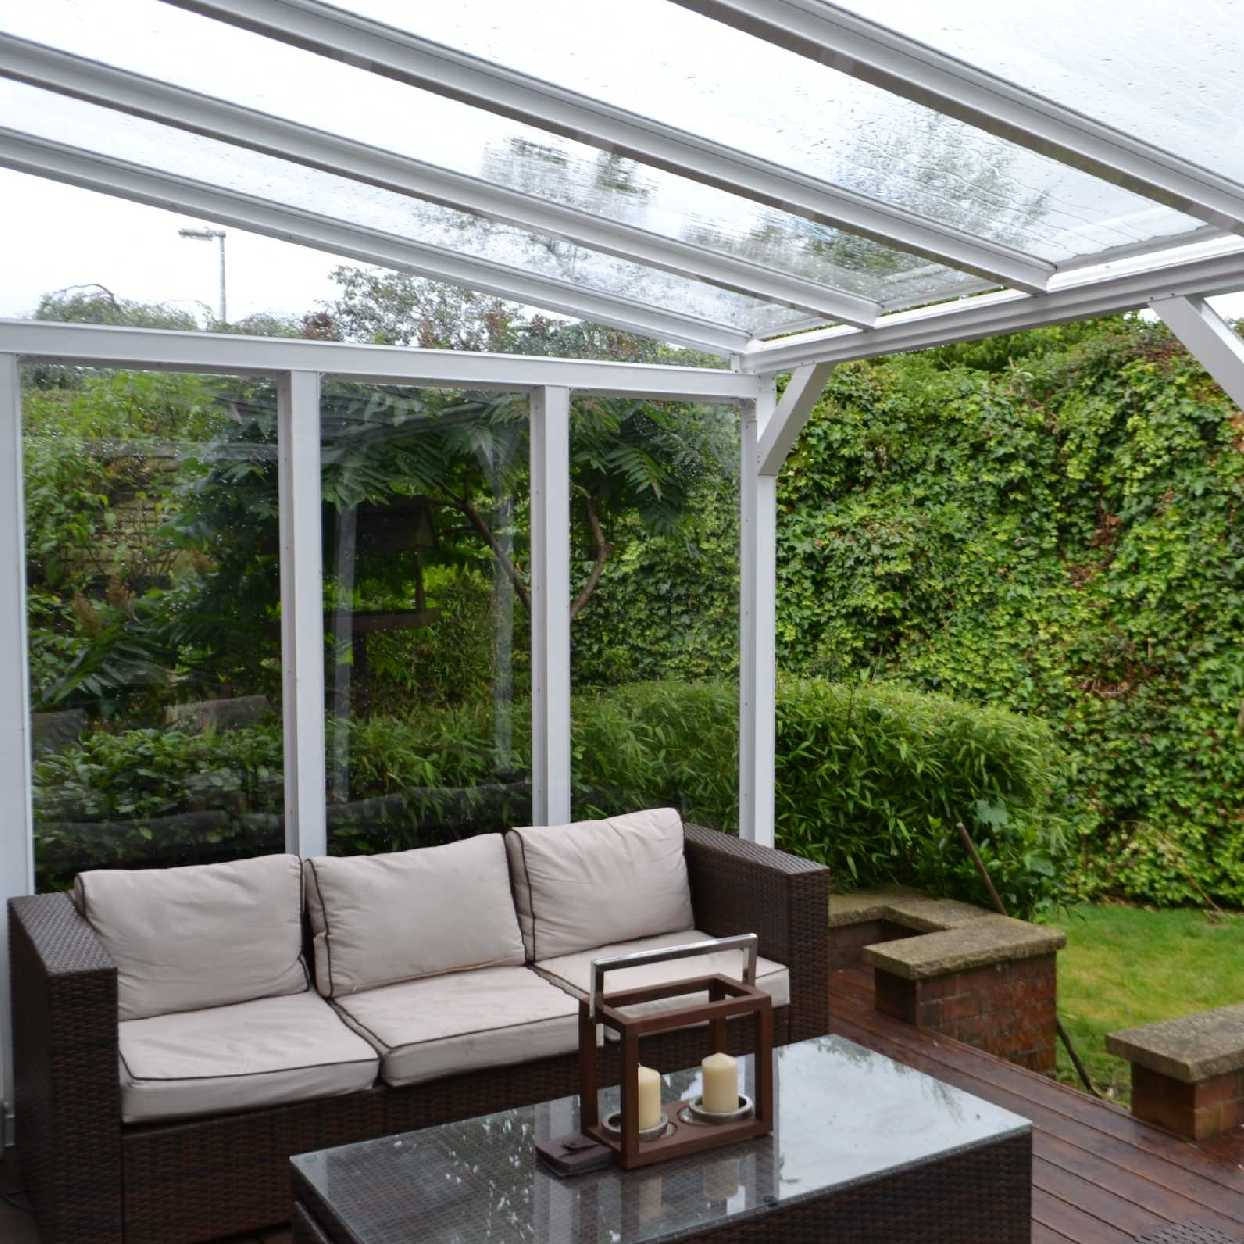 Great selection of Omega Smart Lean-To Canopy with 16mm Polycarbonate Glazing - 5.2m (W) x 2.5m (P), (3) Supporting Posts